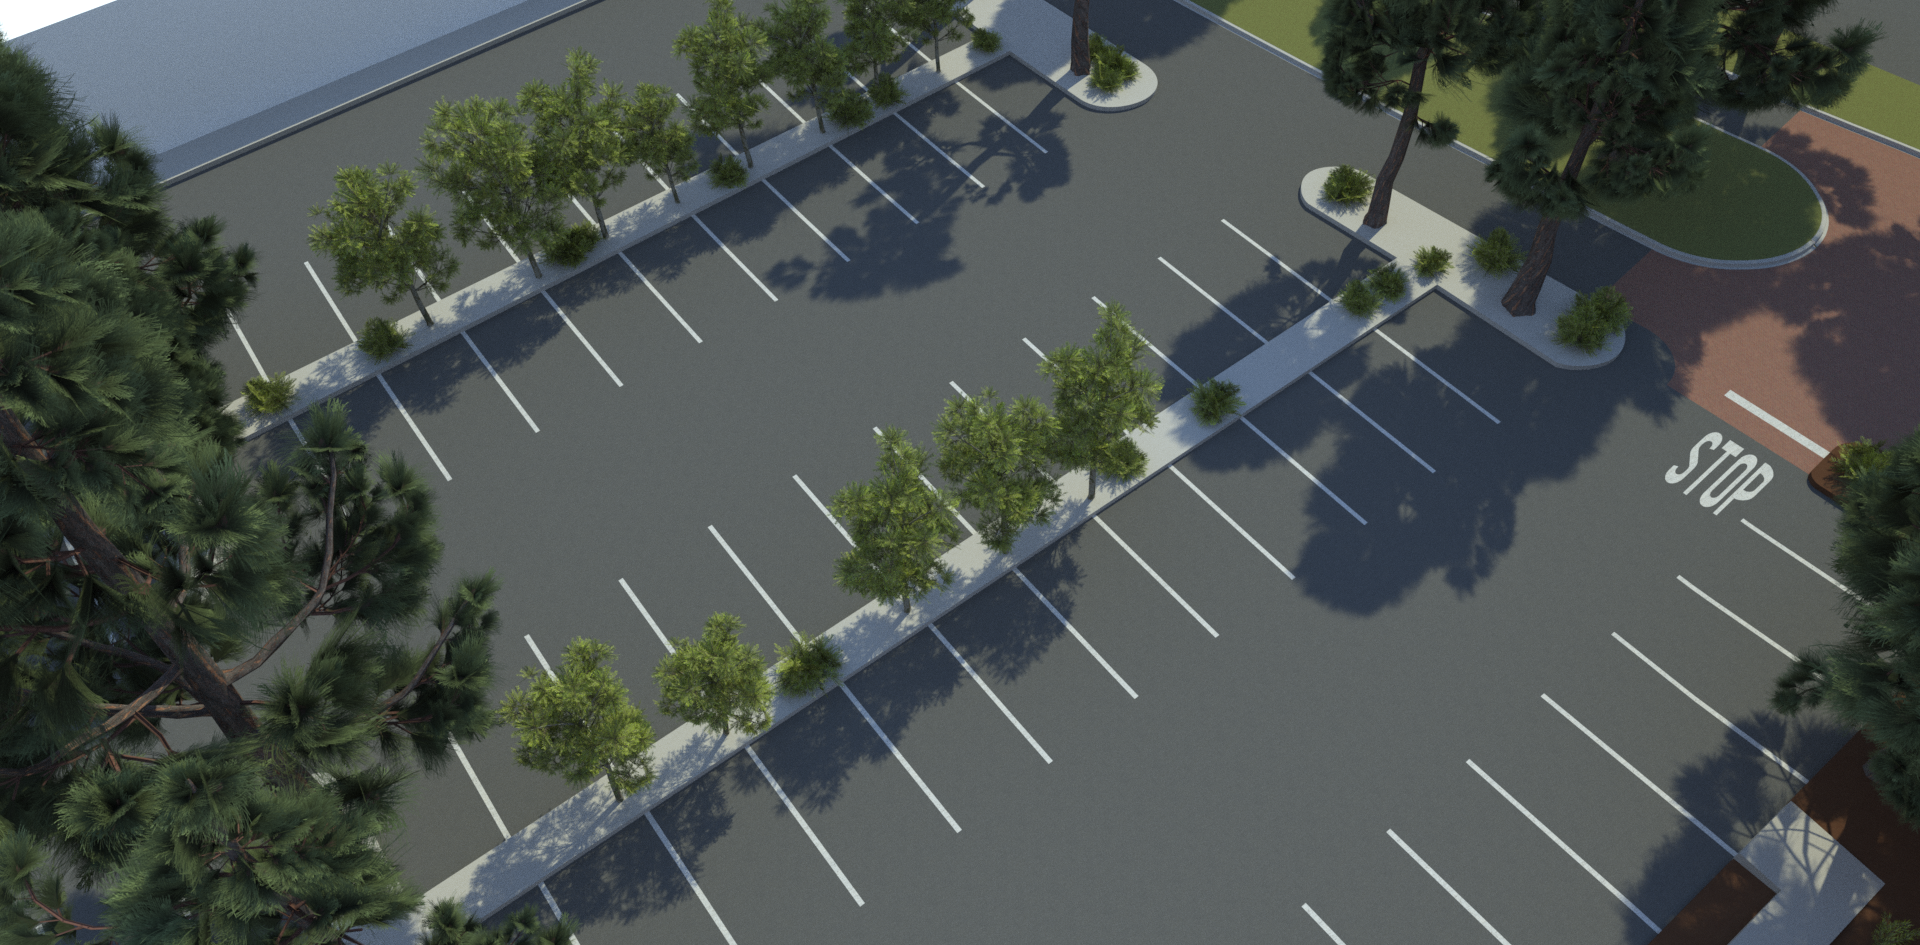 Parking Lot with Trees